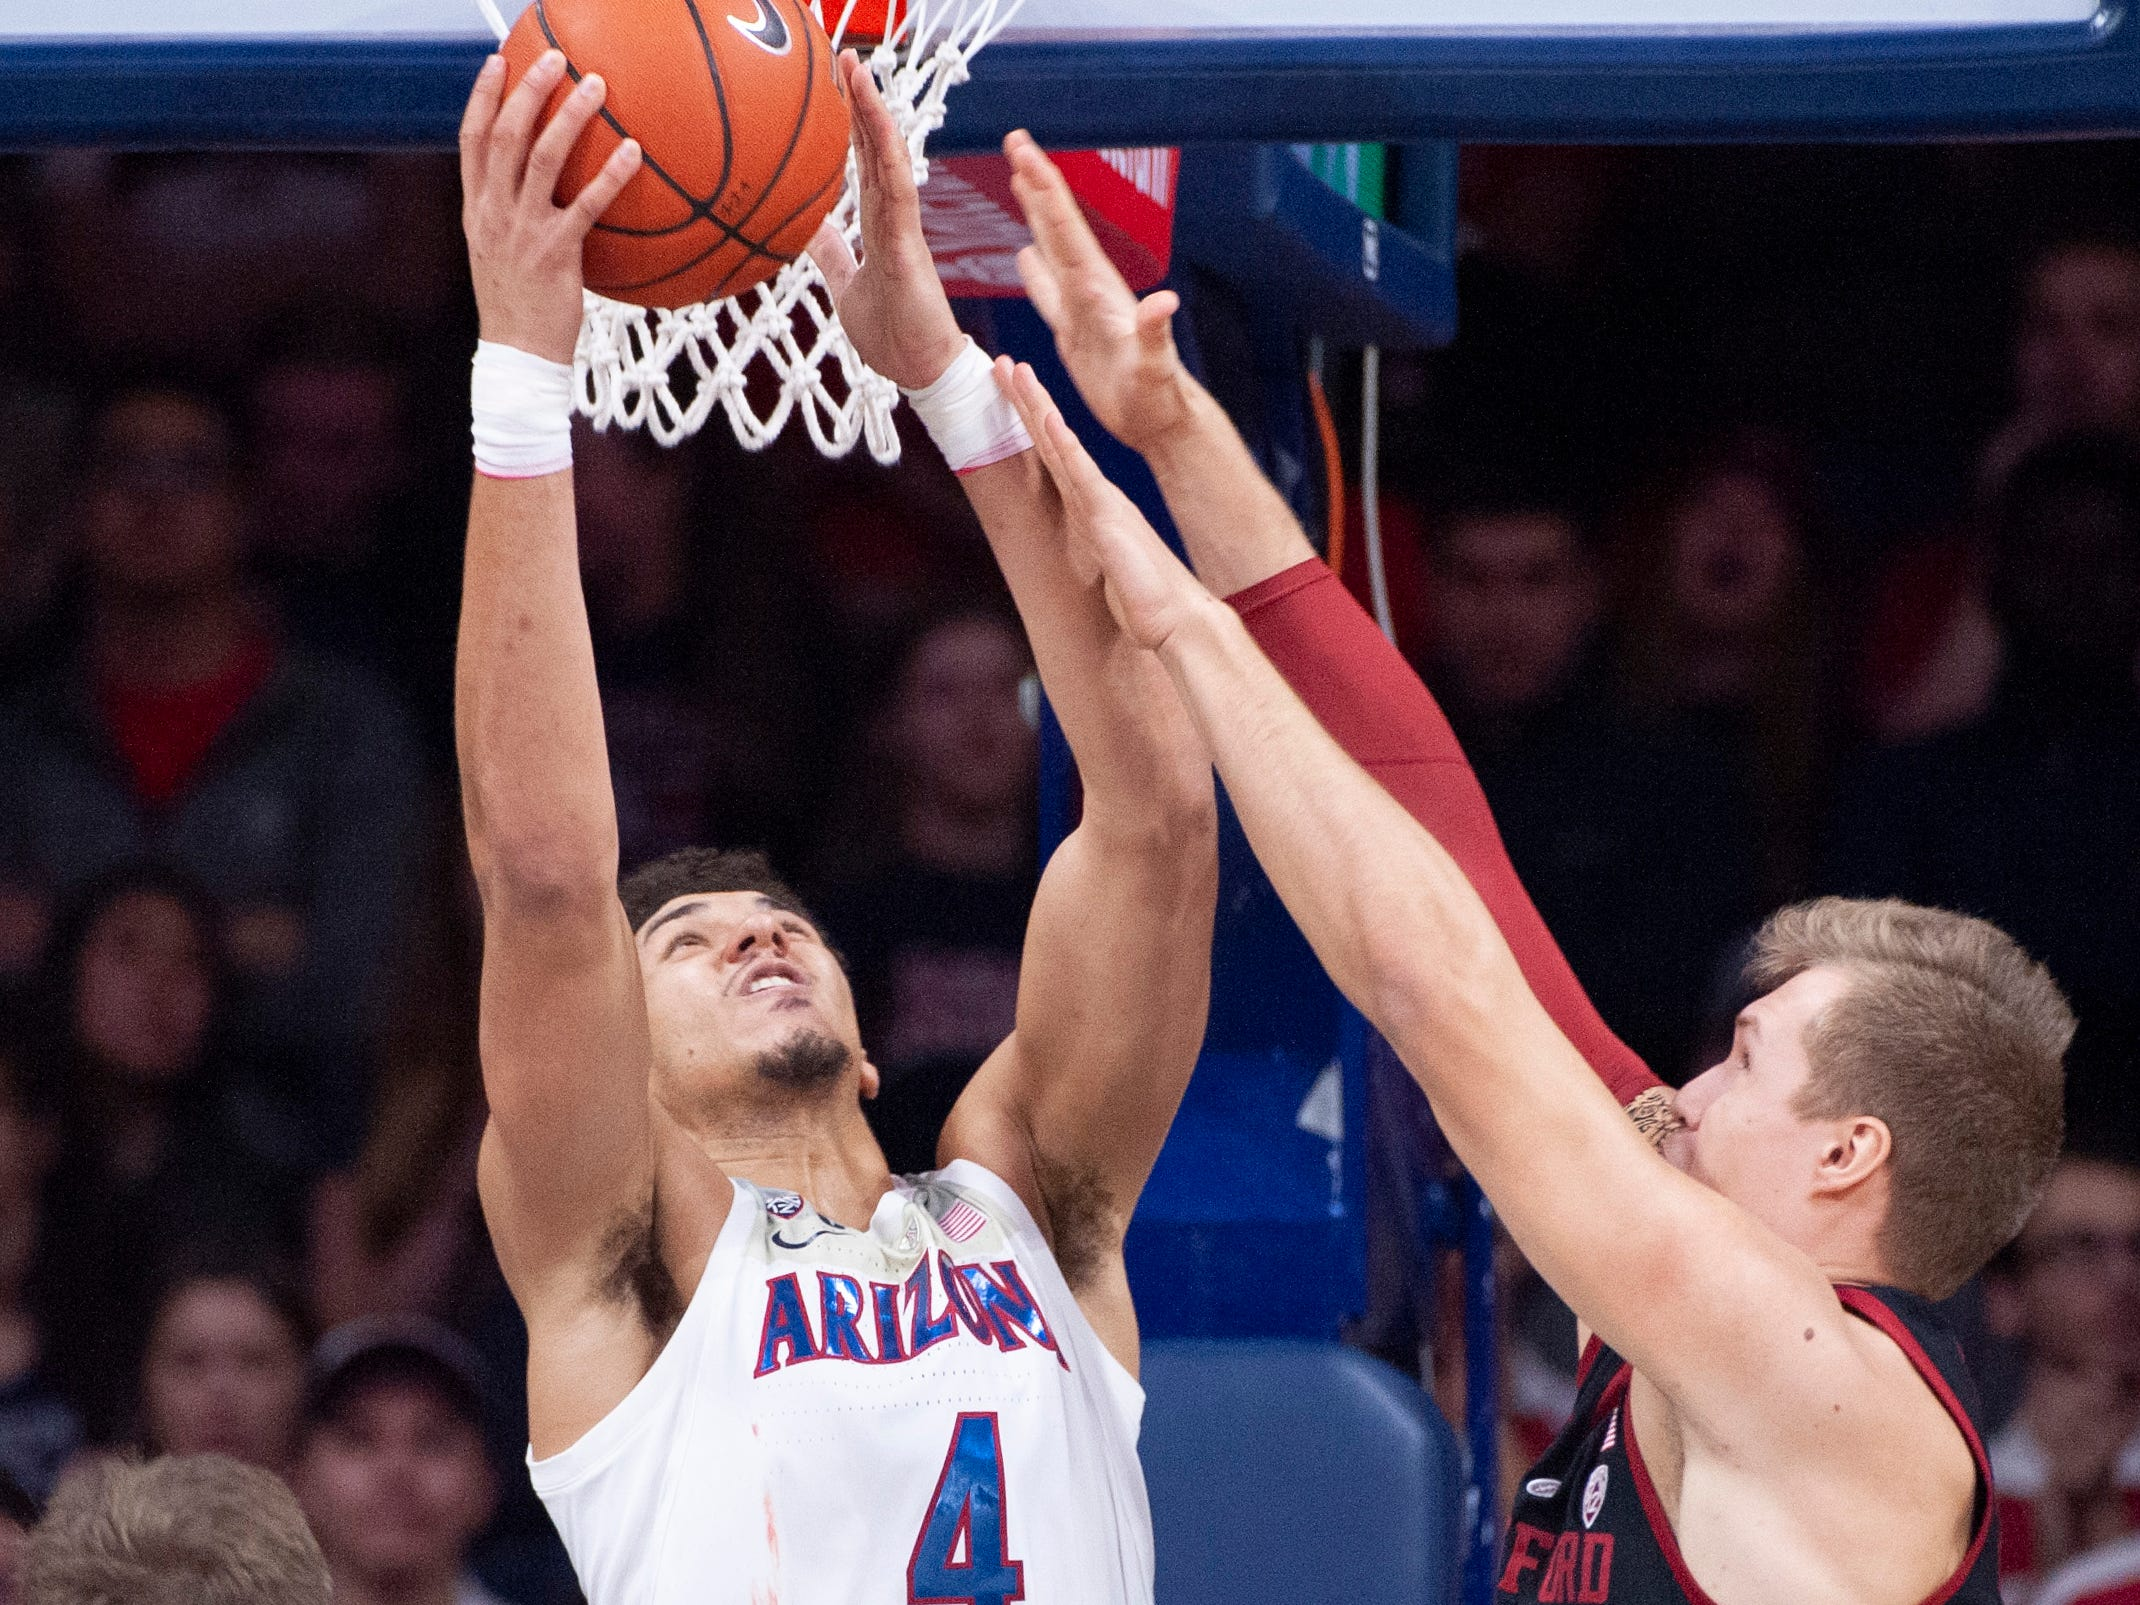 Feb 24, 2019: Arizona Wildcats center Chase Jeter (4) shoots against Stanford Cardinal forward Lukas Kisunas (32) during the first half at McKale Center.